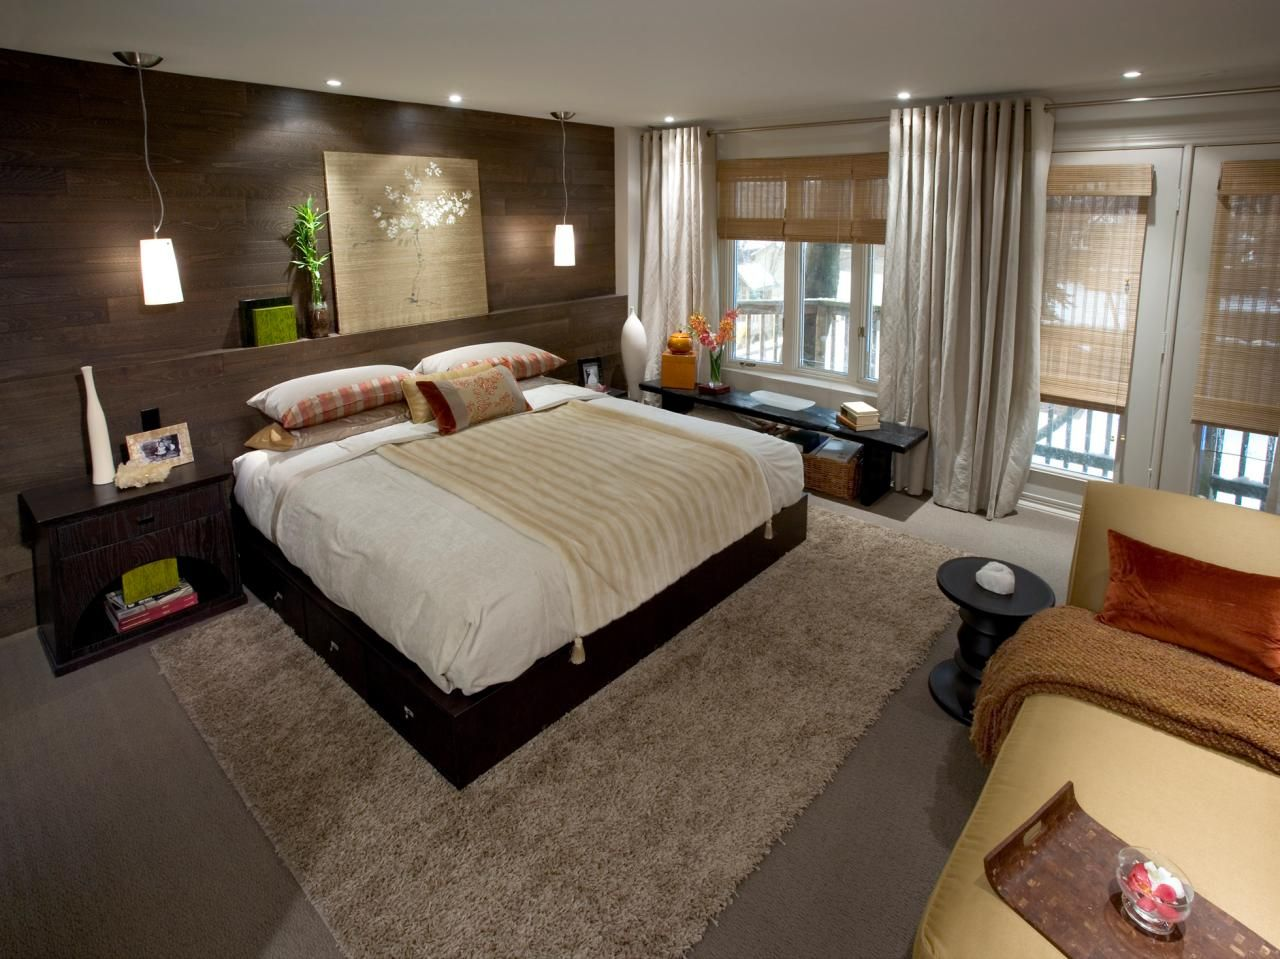 Divine design episodes online - 10 Divine Master Bedrooms By Candice Olson